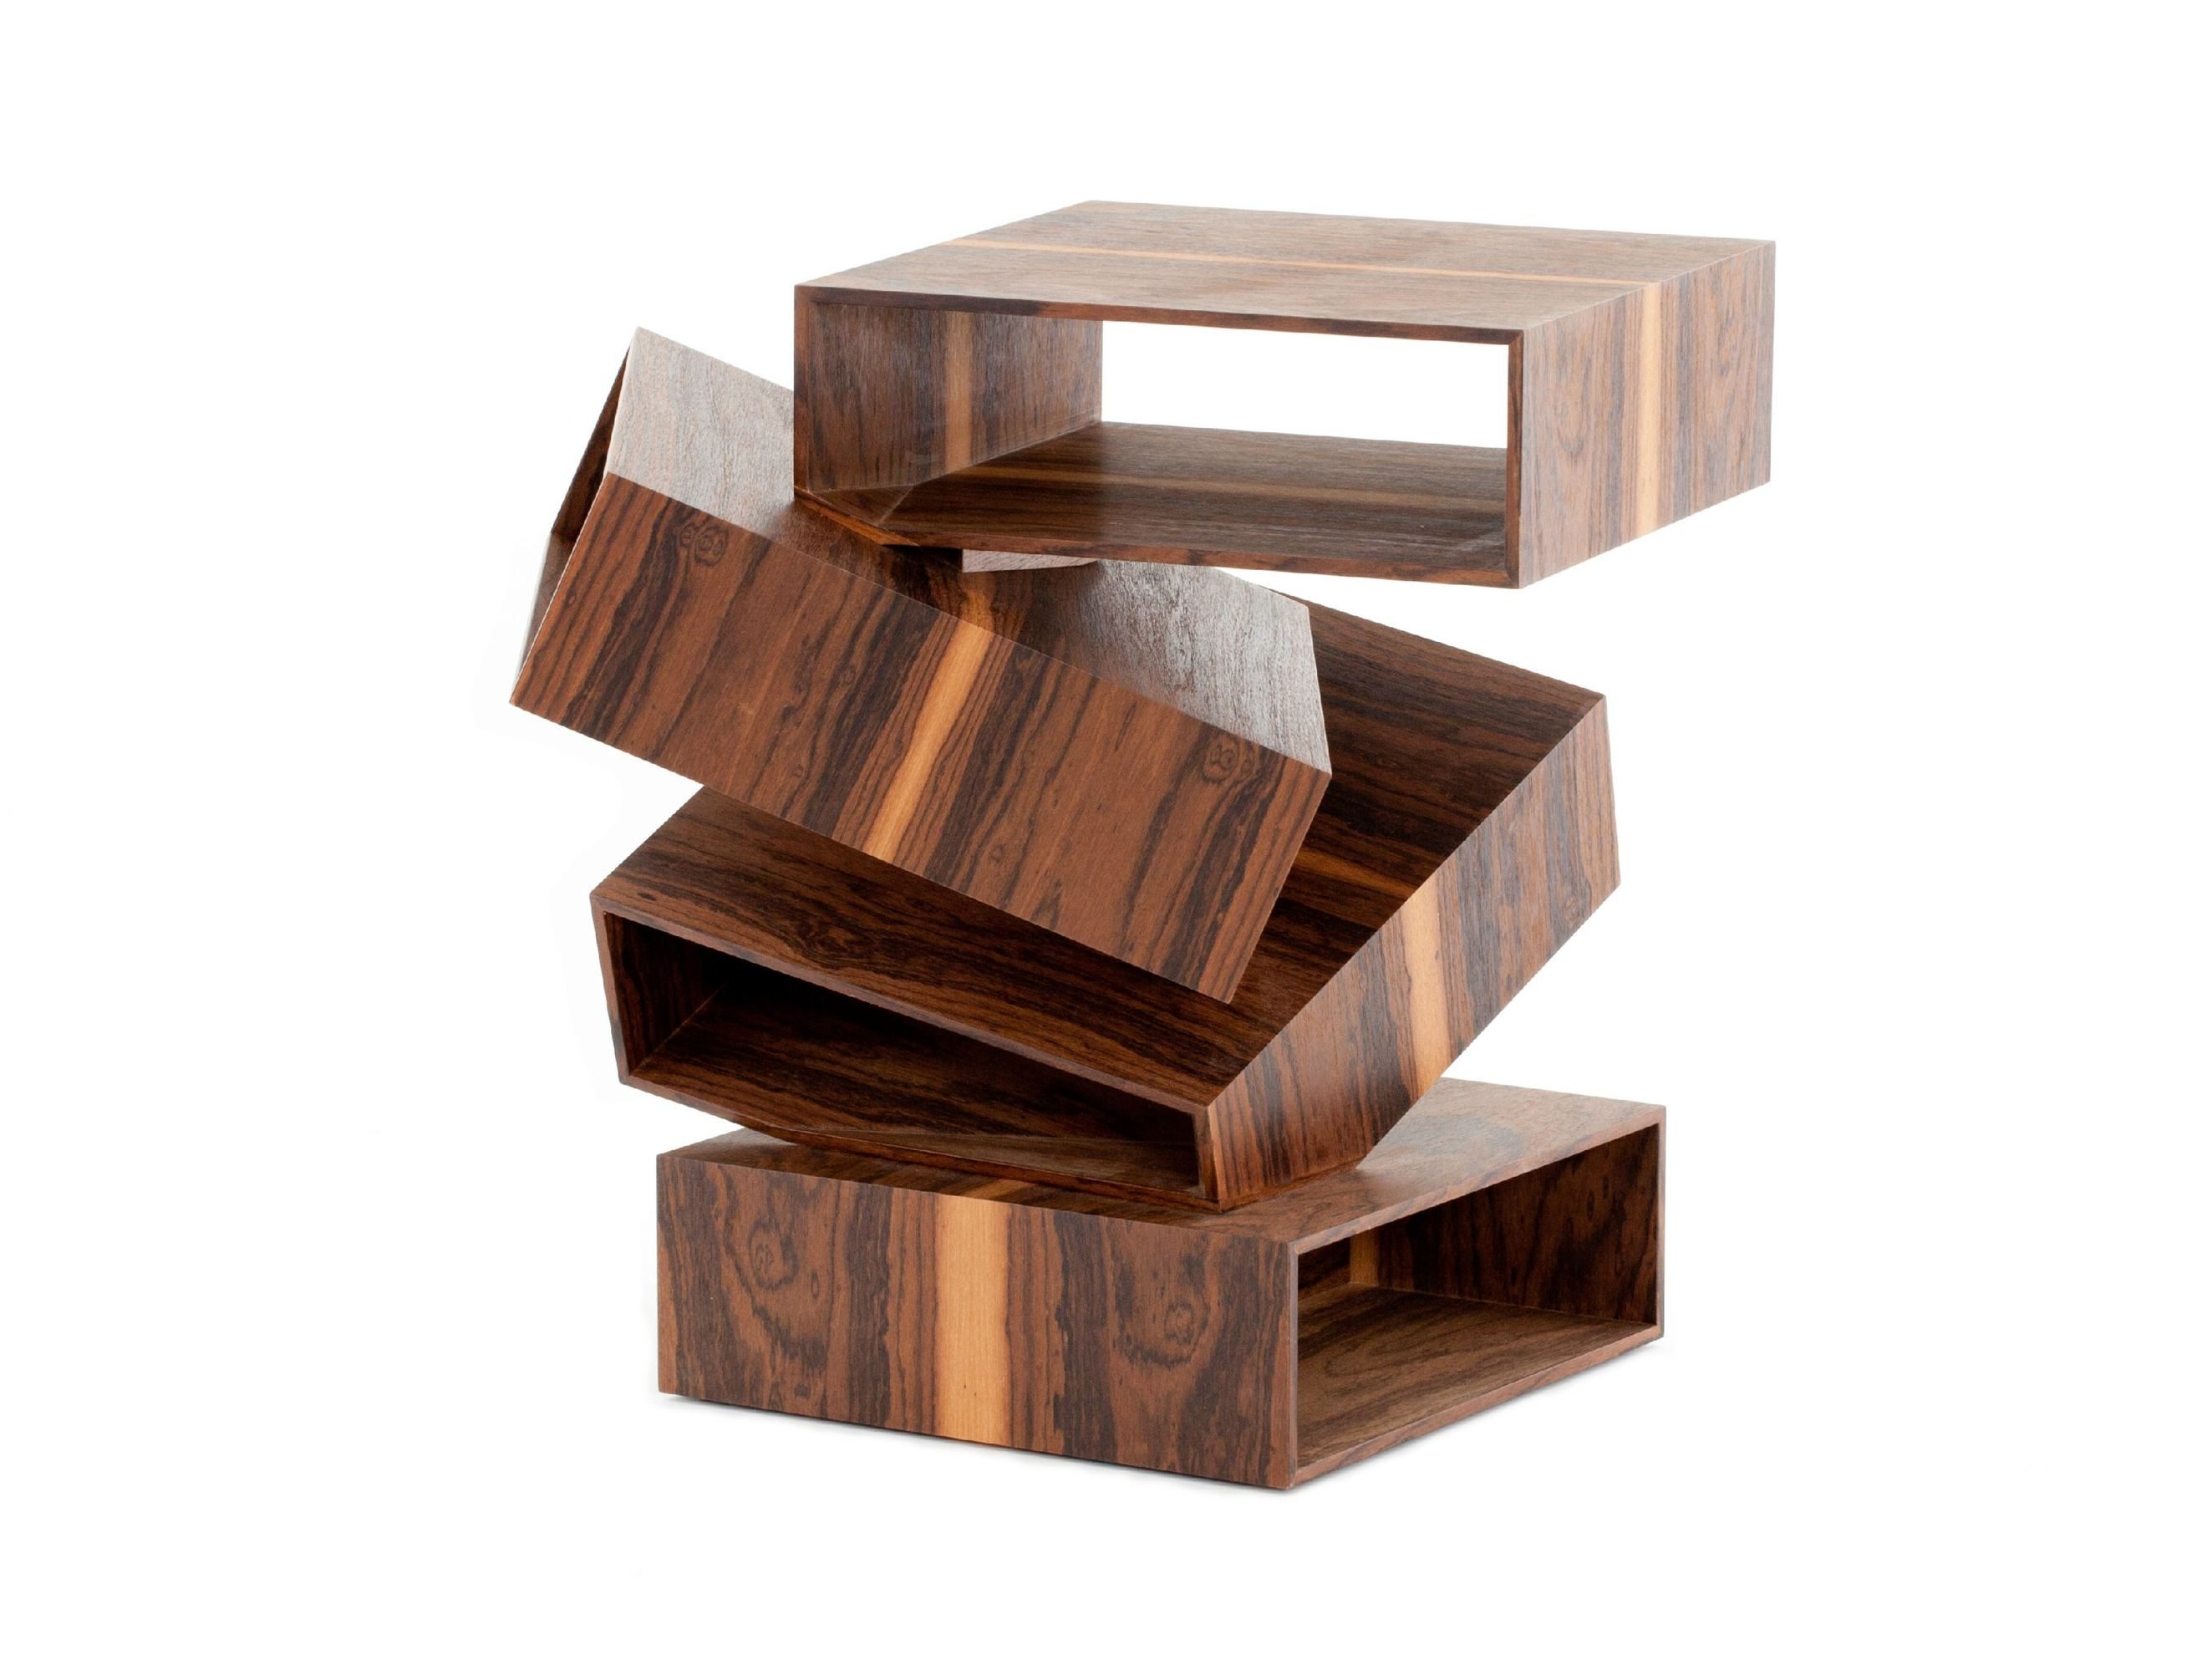 Solid Wood Coffee Table Balancing Boxes By Porro Design Front